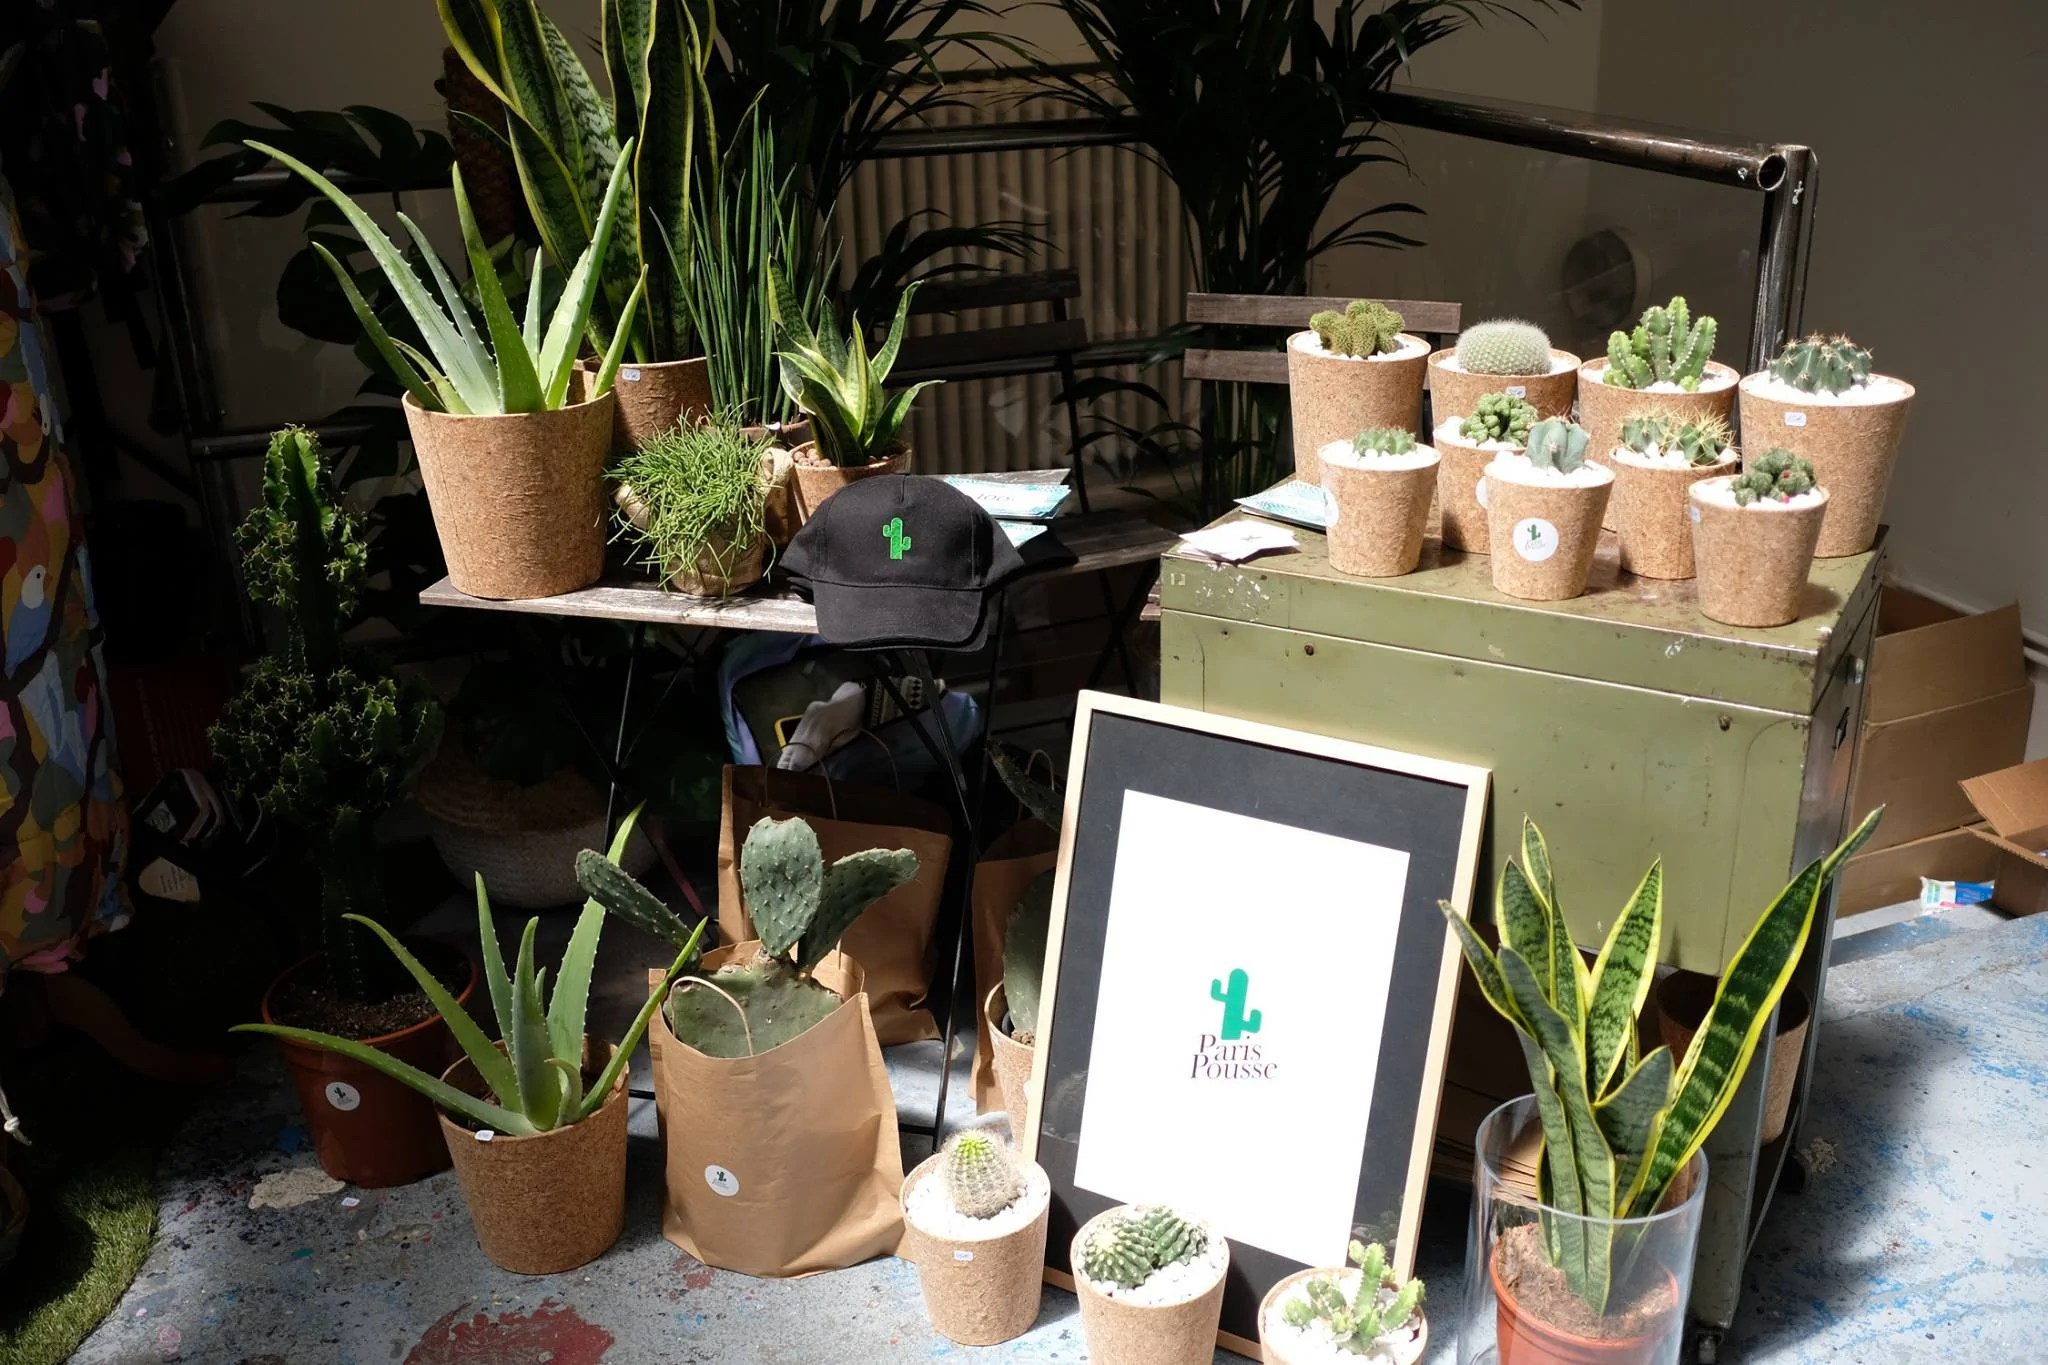 Vente Plantes Paris Des Pop Up Green Dans Paris Paris Pousse